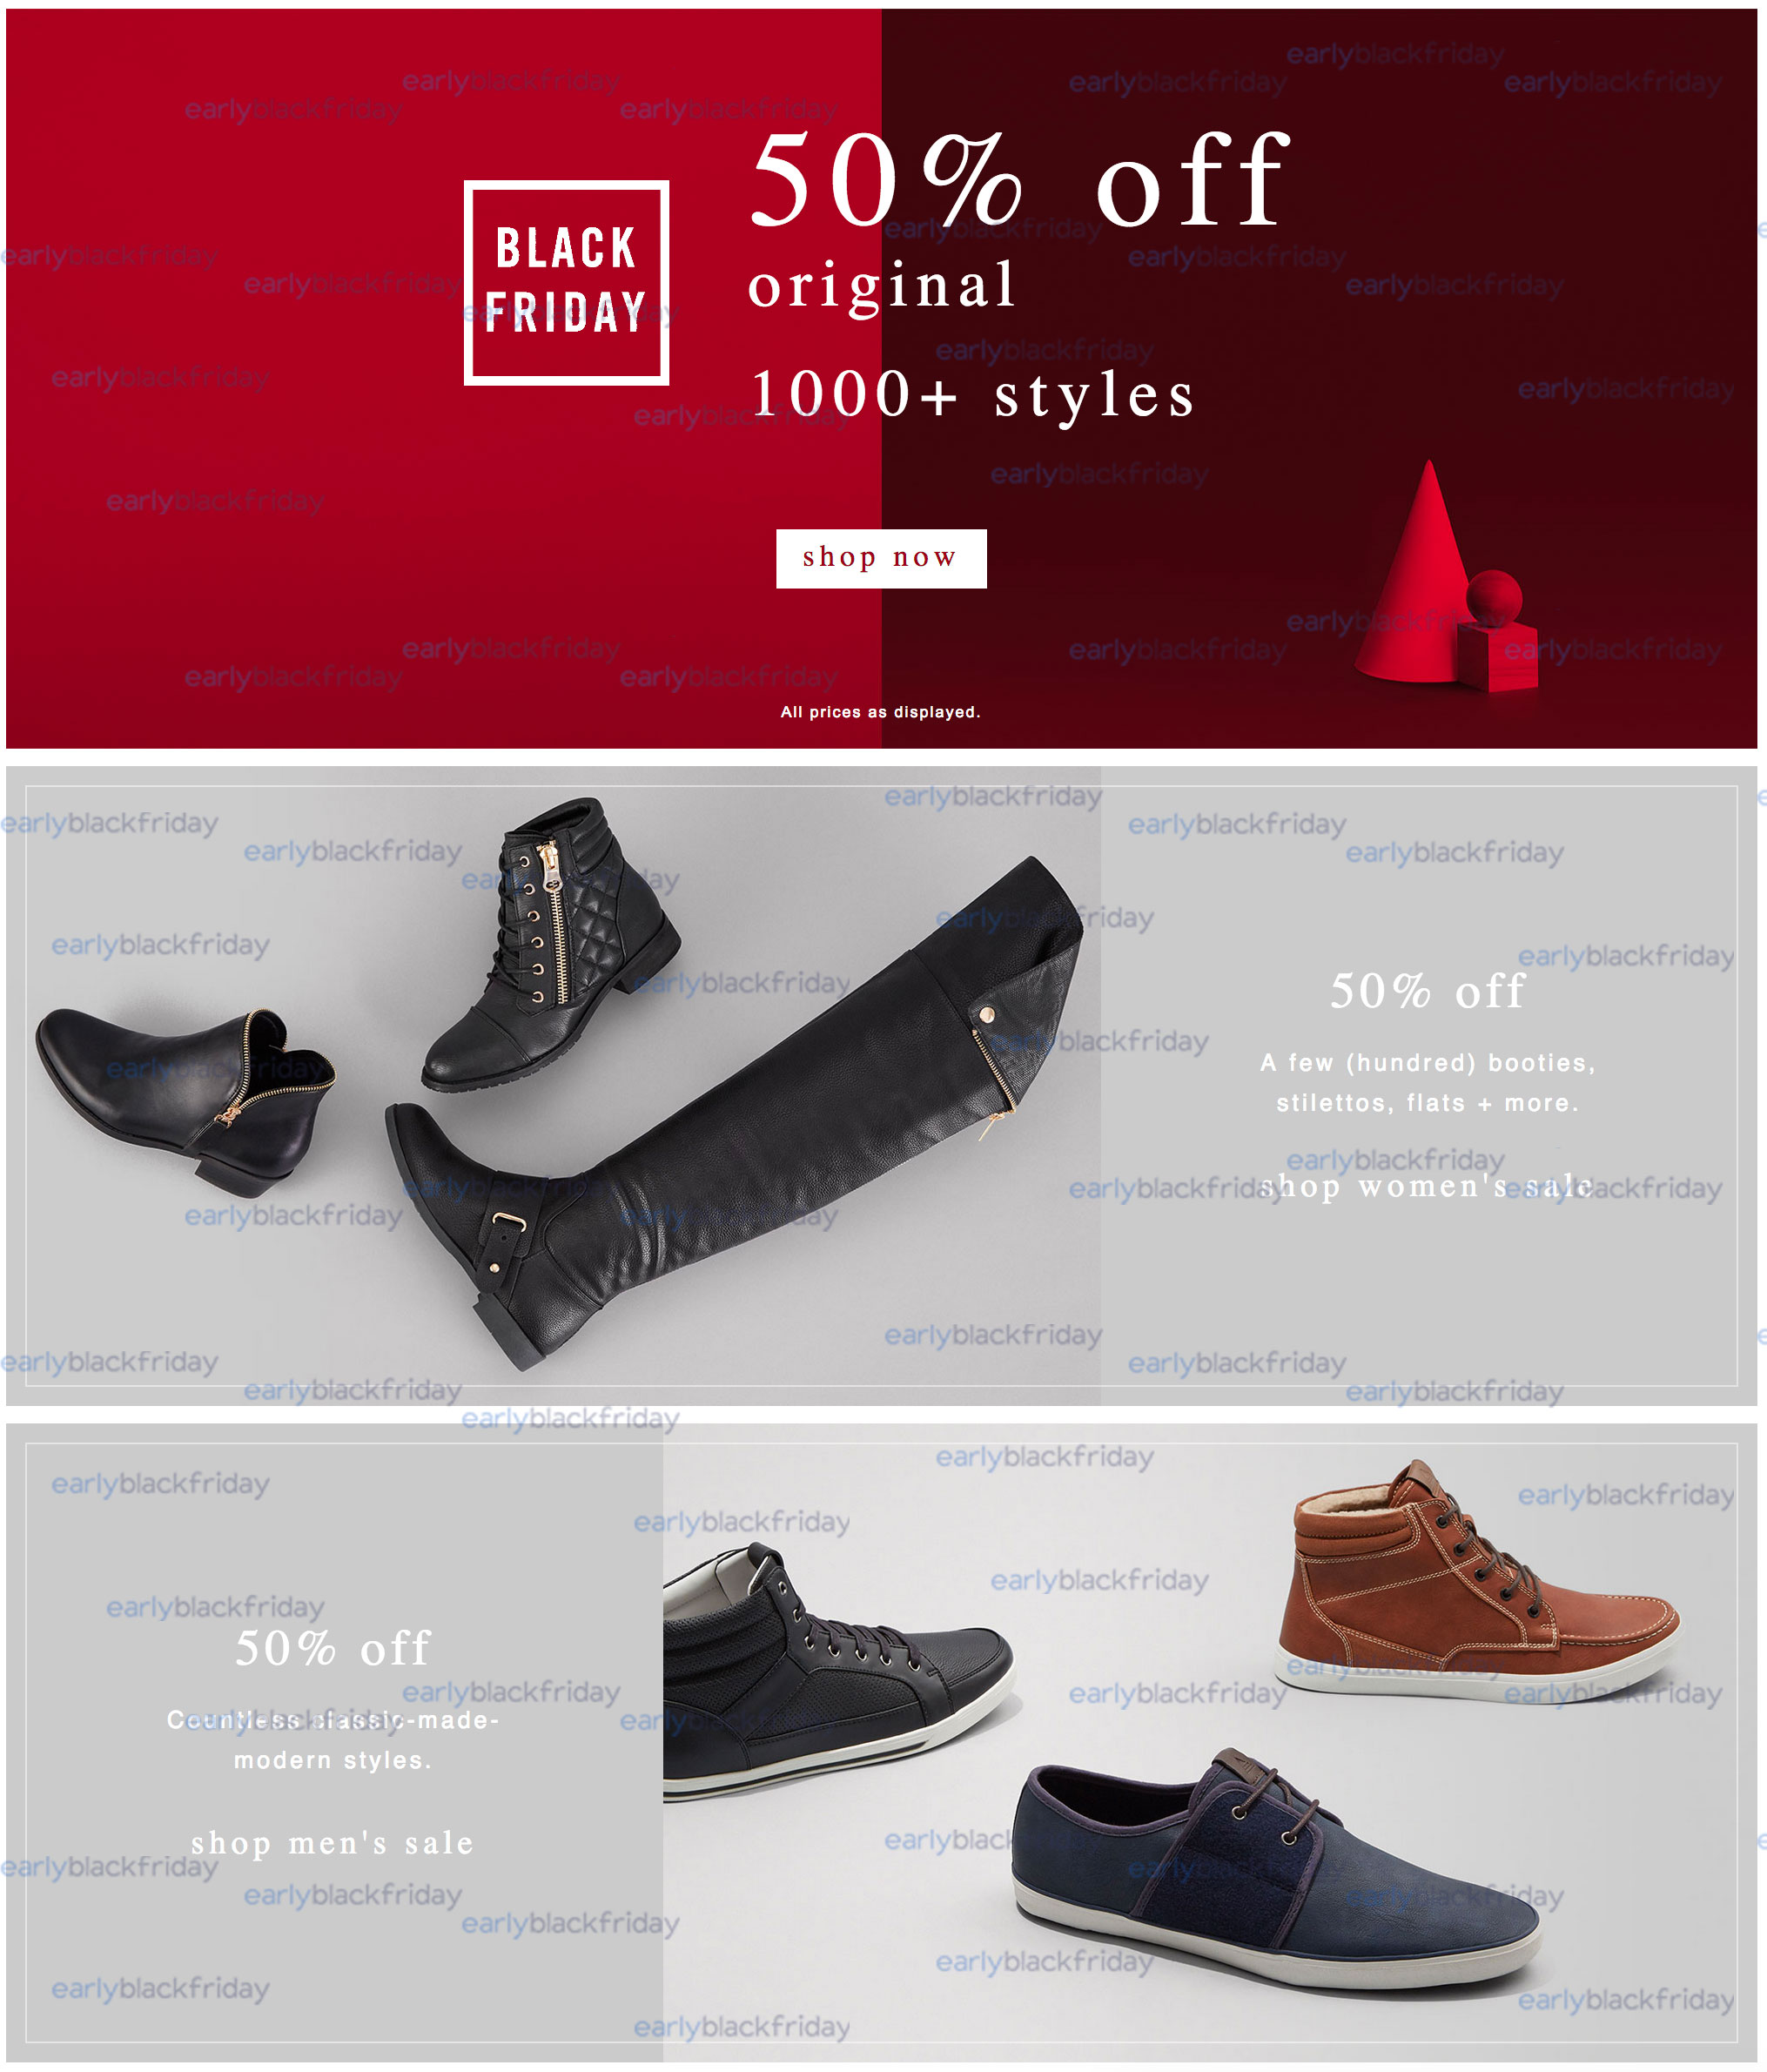 aldo shoes 50% off